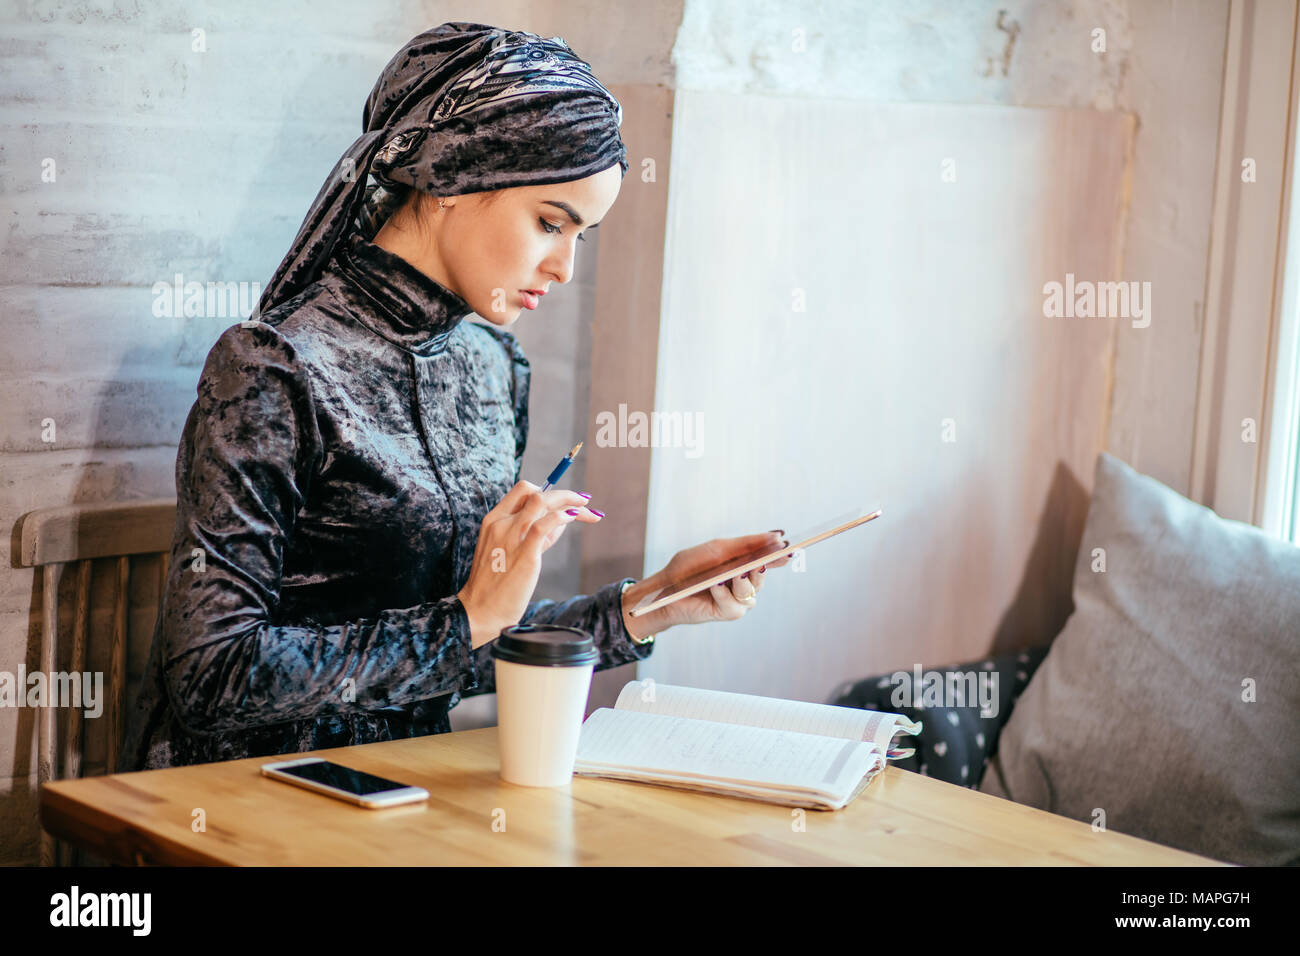 muslim women working with tablet and drink coffee in cafe Stock Photo